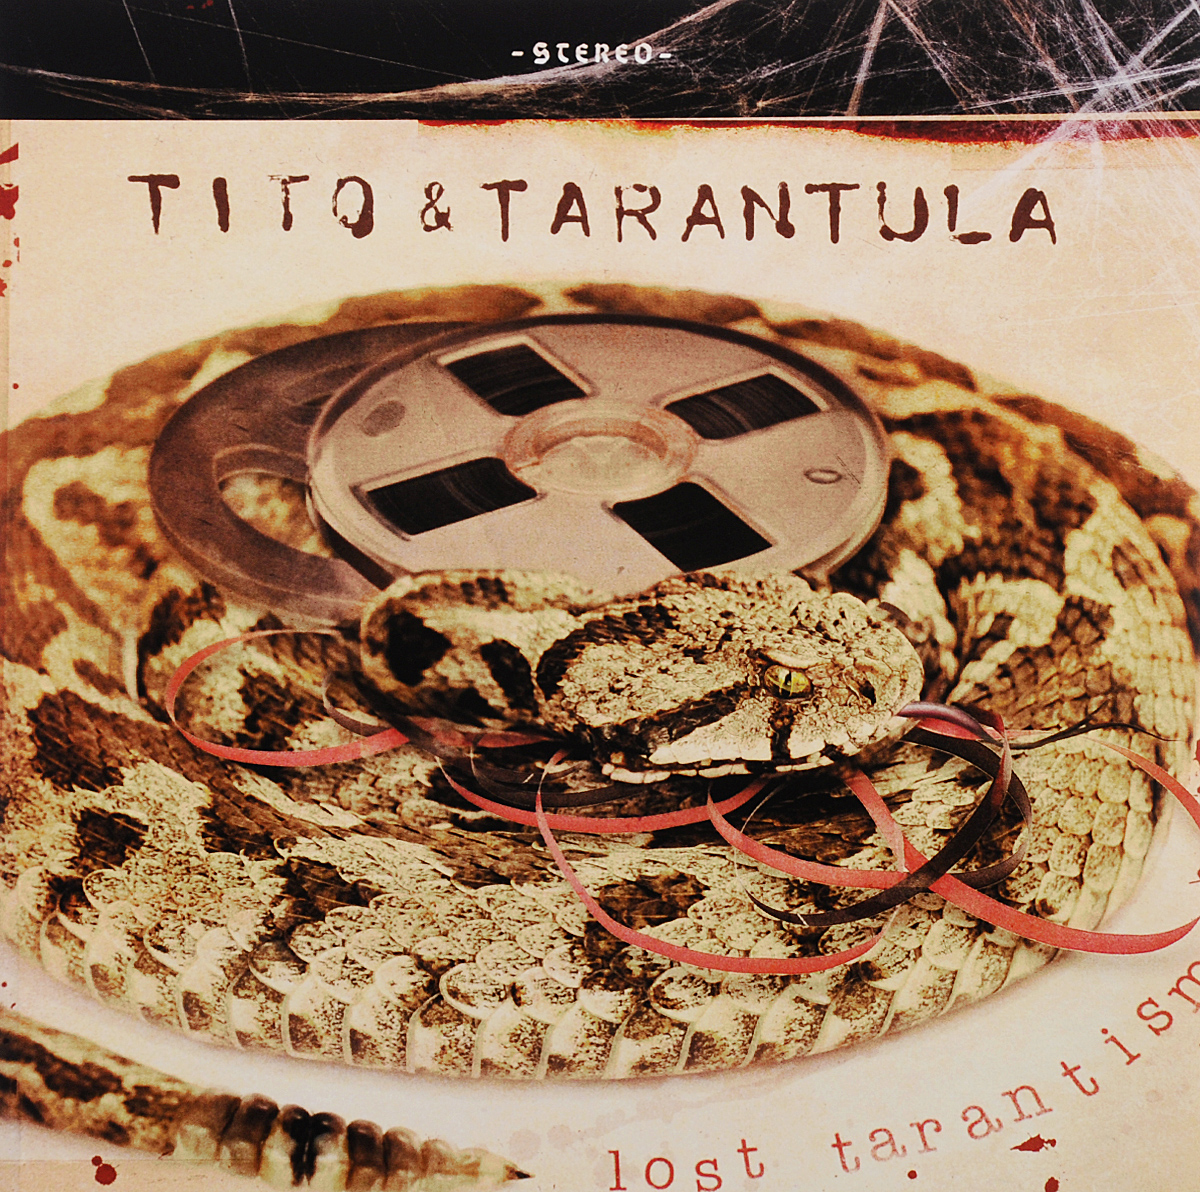 Tito & Tarantula Tito & Tarantula. Lost Tarantism (LP) + CD the lost ship starter level cd rom